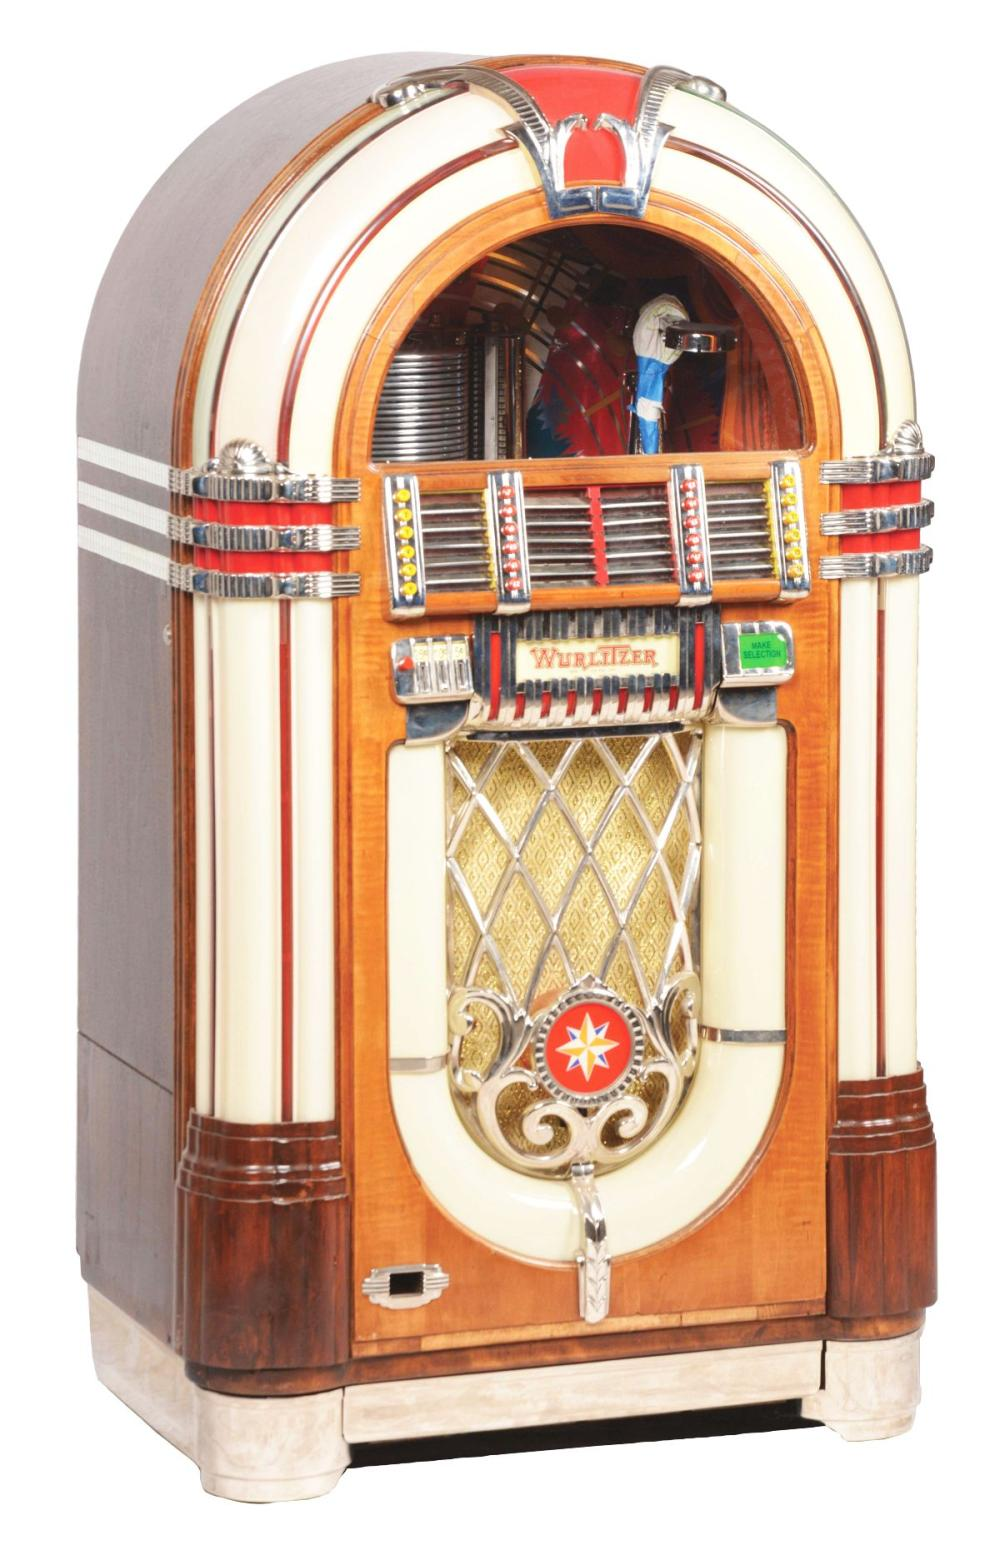 WURLITZER MODEL 1015 JUKEBOX.